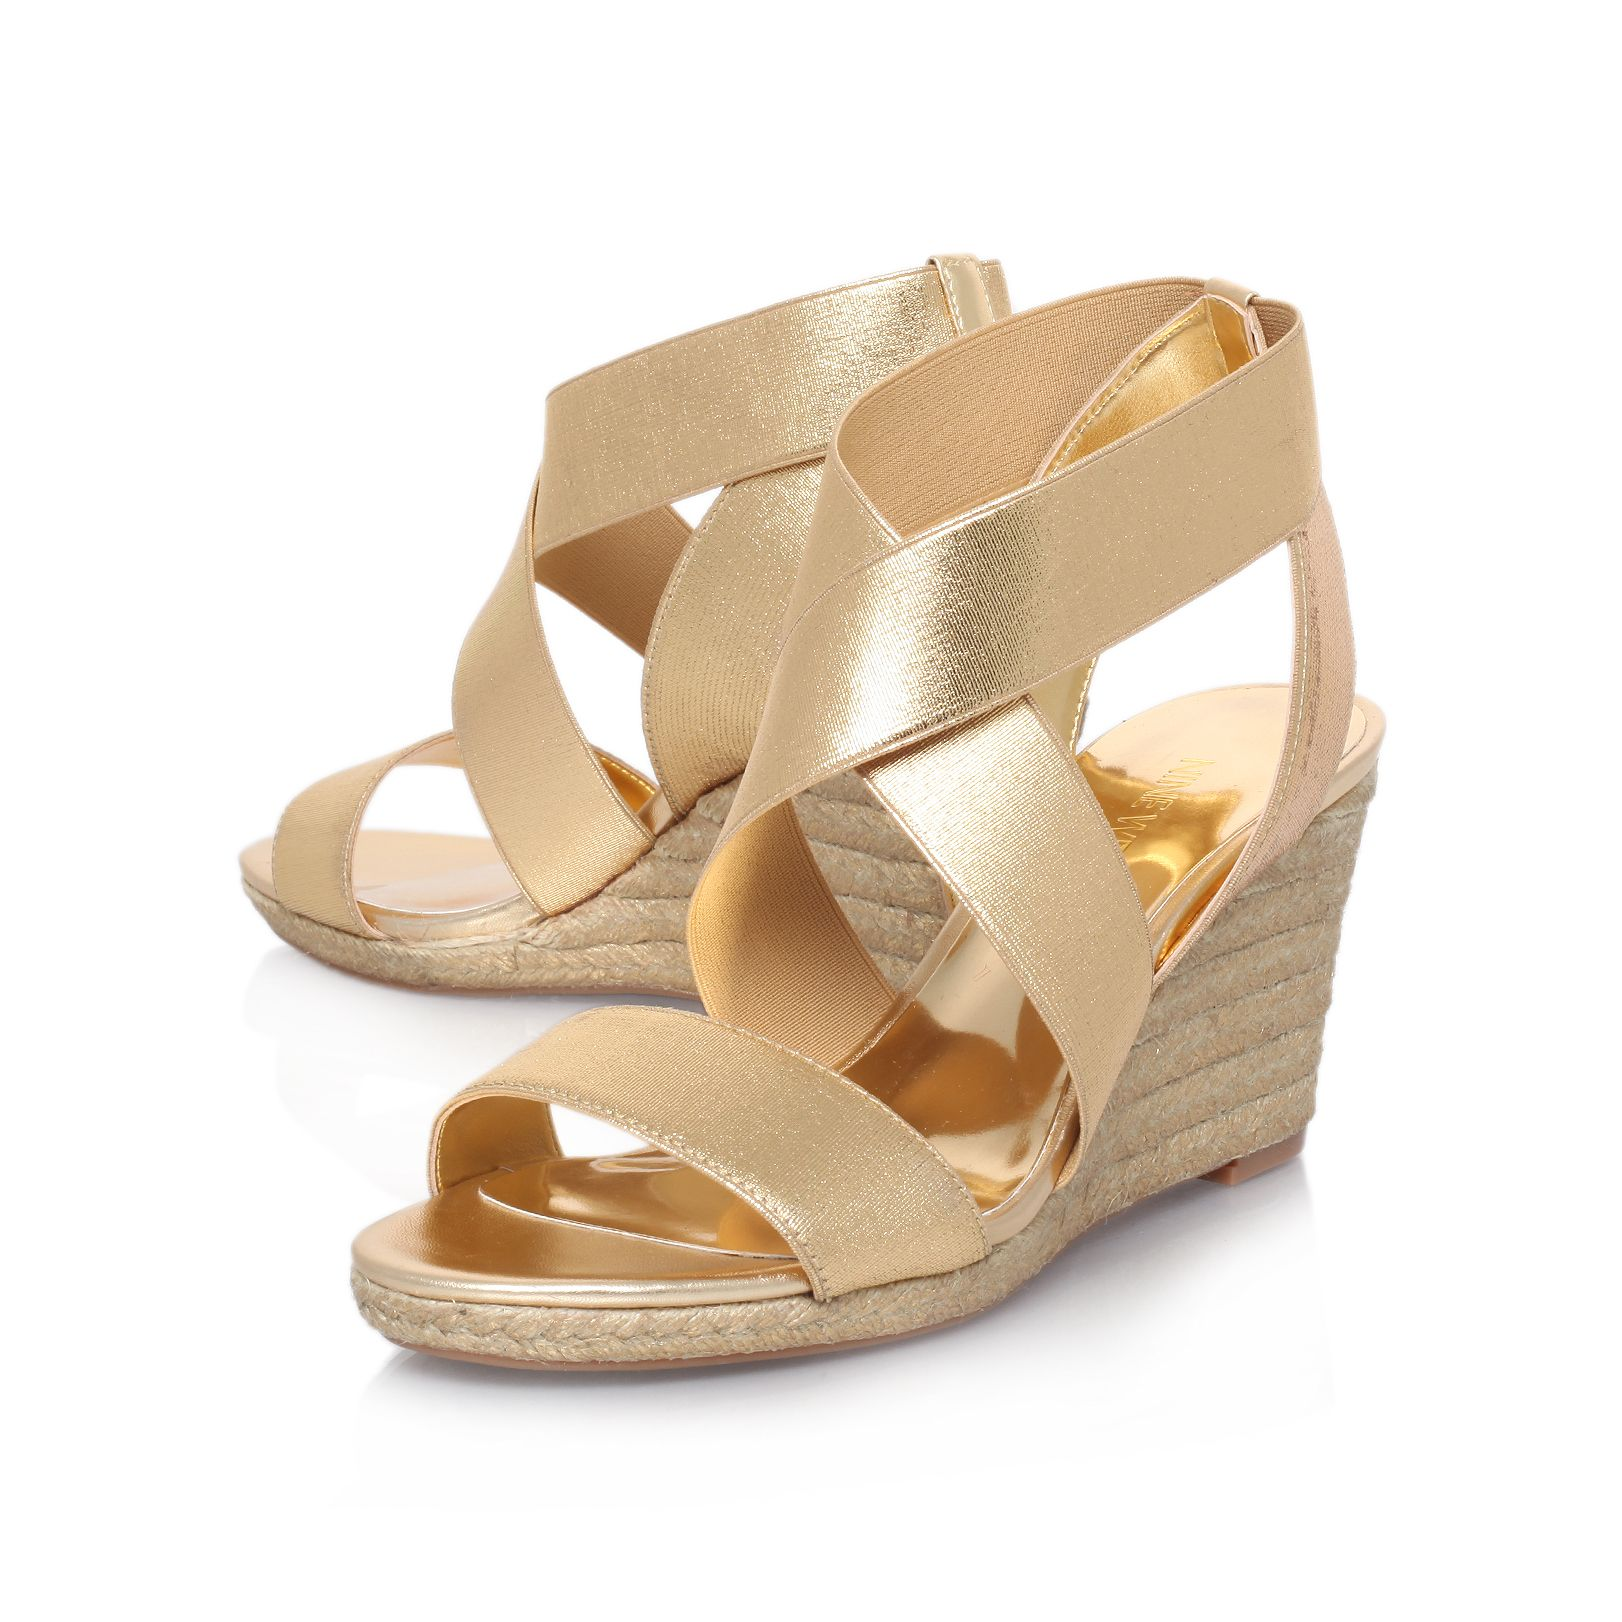 Juna2 strap wedge sandals